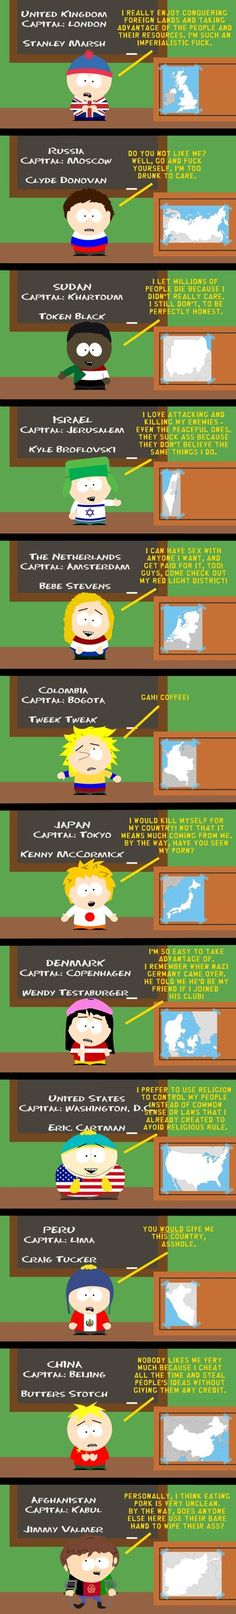 Young Diplomats by niels827 on deviantART >>> I honestly think Kenny was referring to anime porn XD